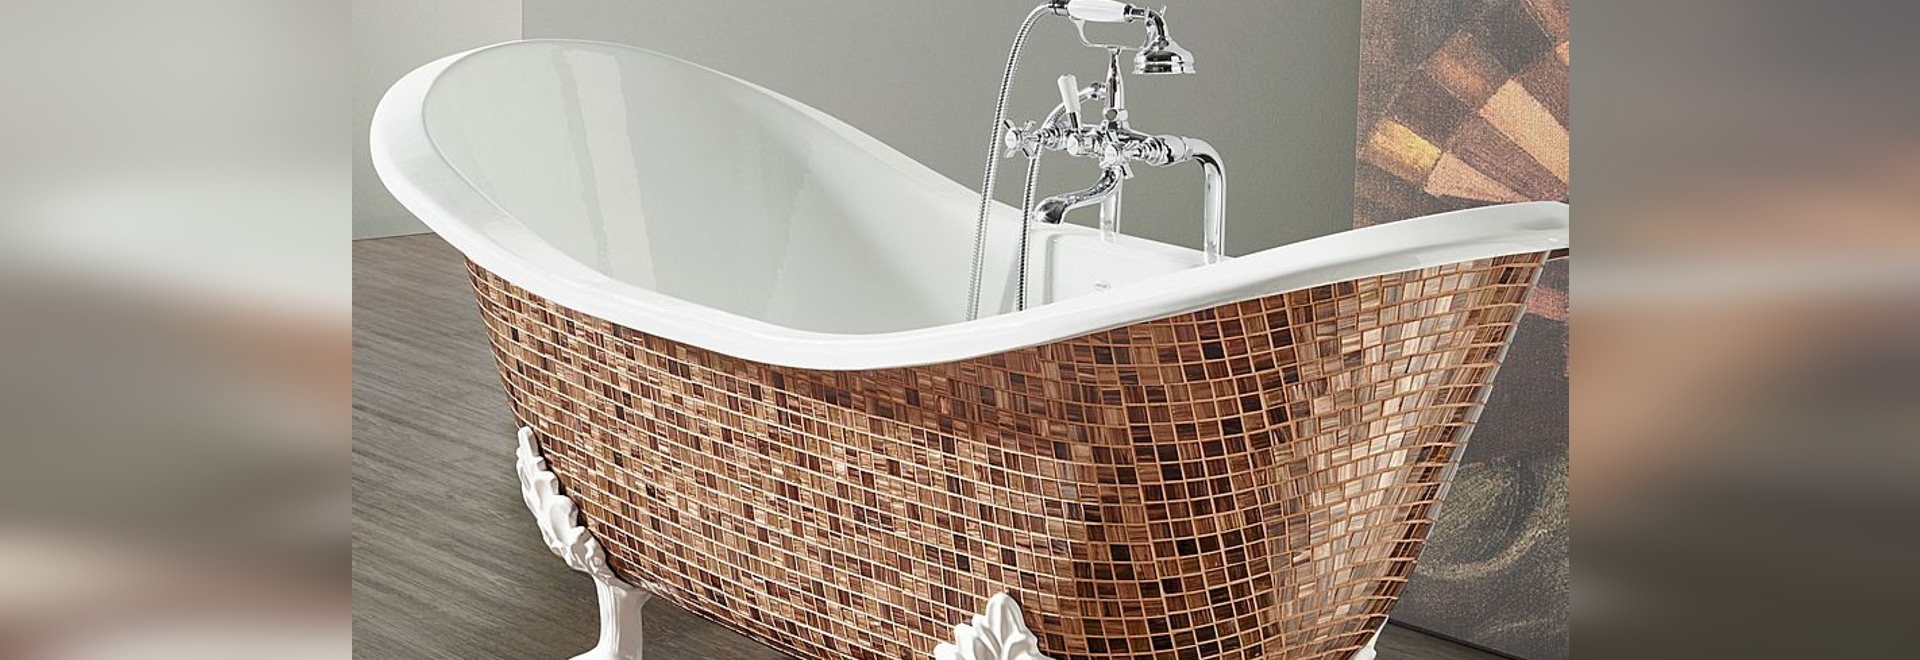 Cast iron bathtub in Mosaic: give a touch of charm to your bathroom!